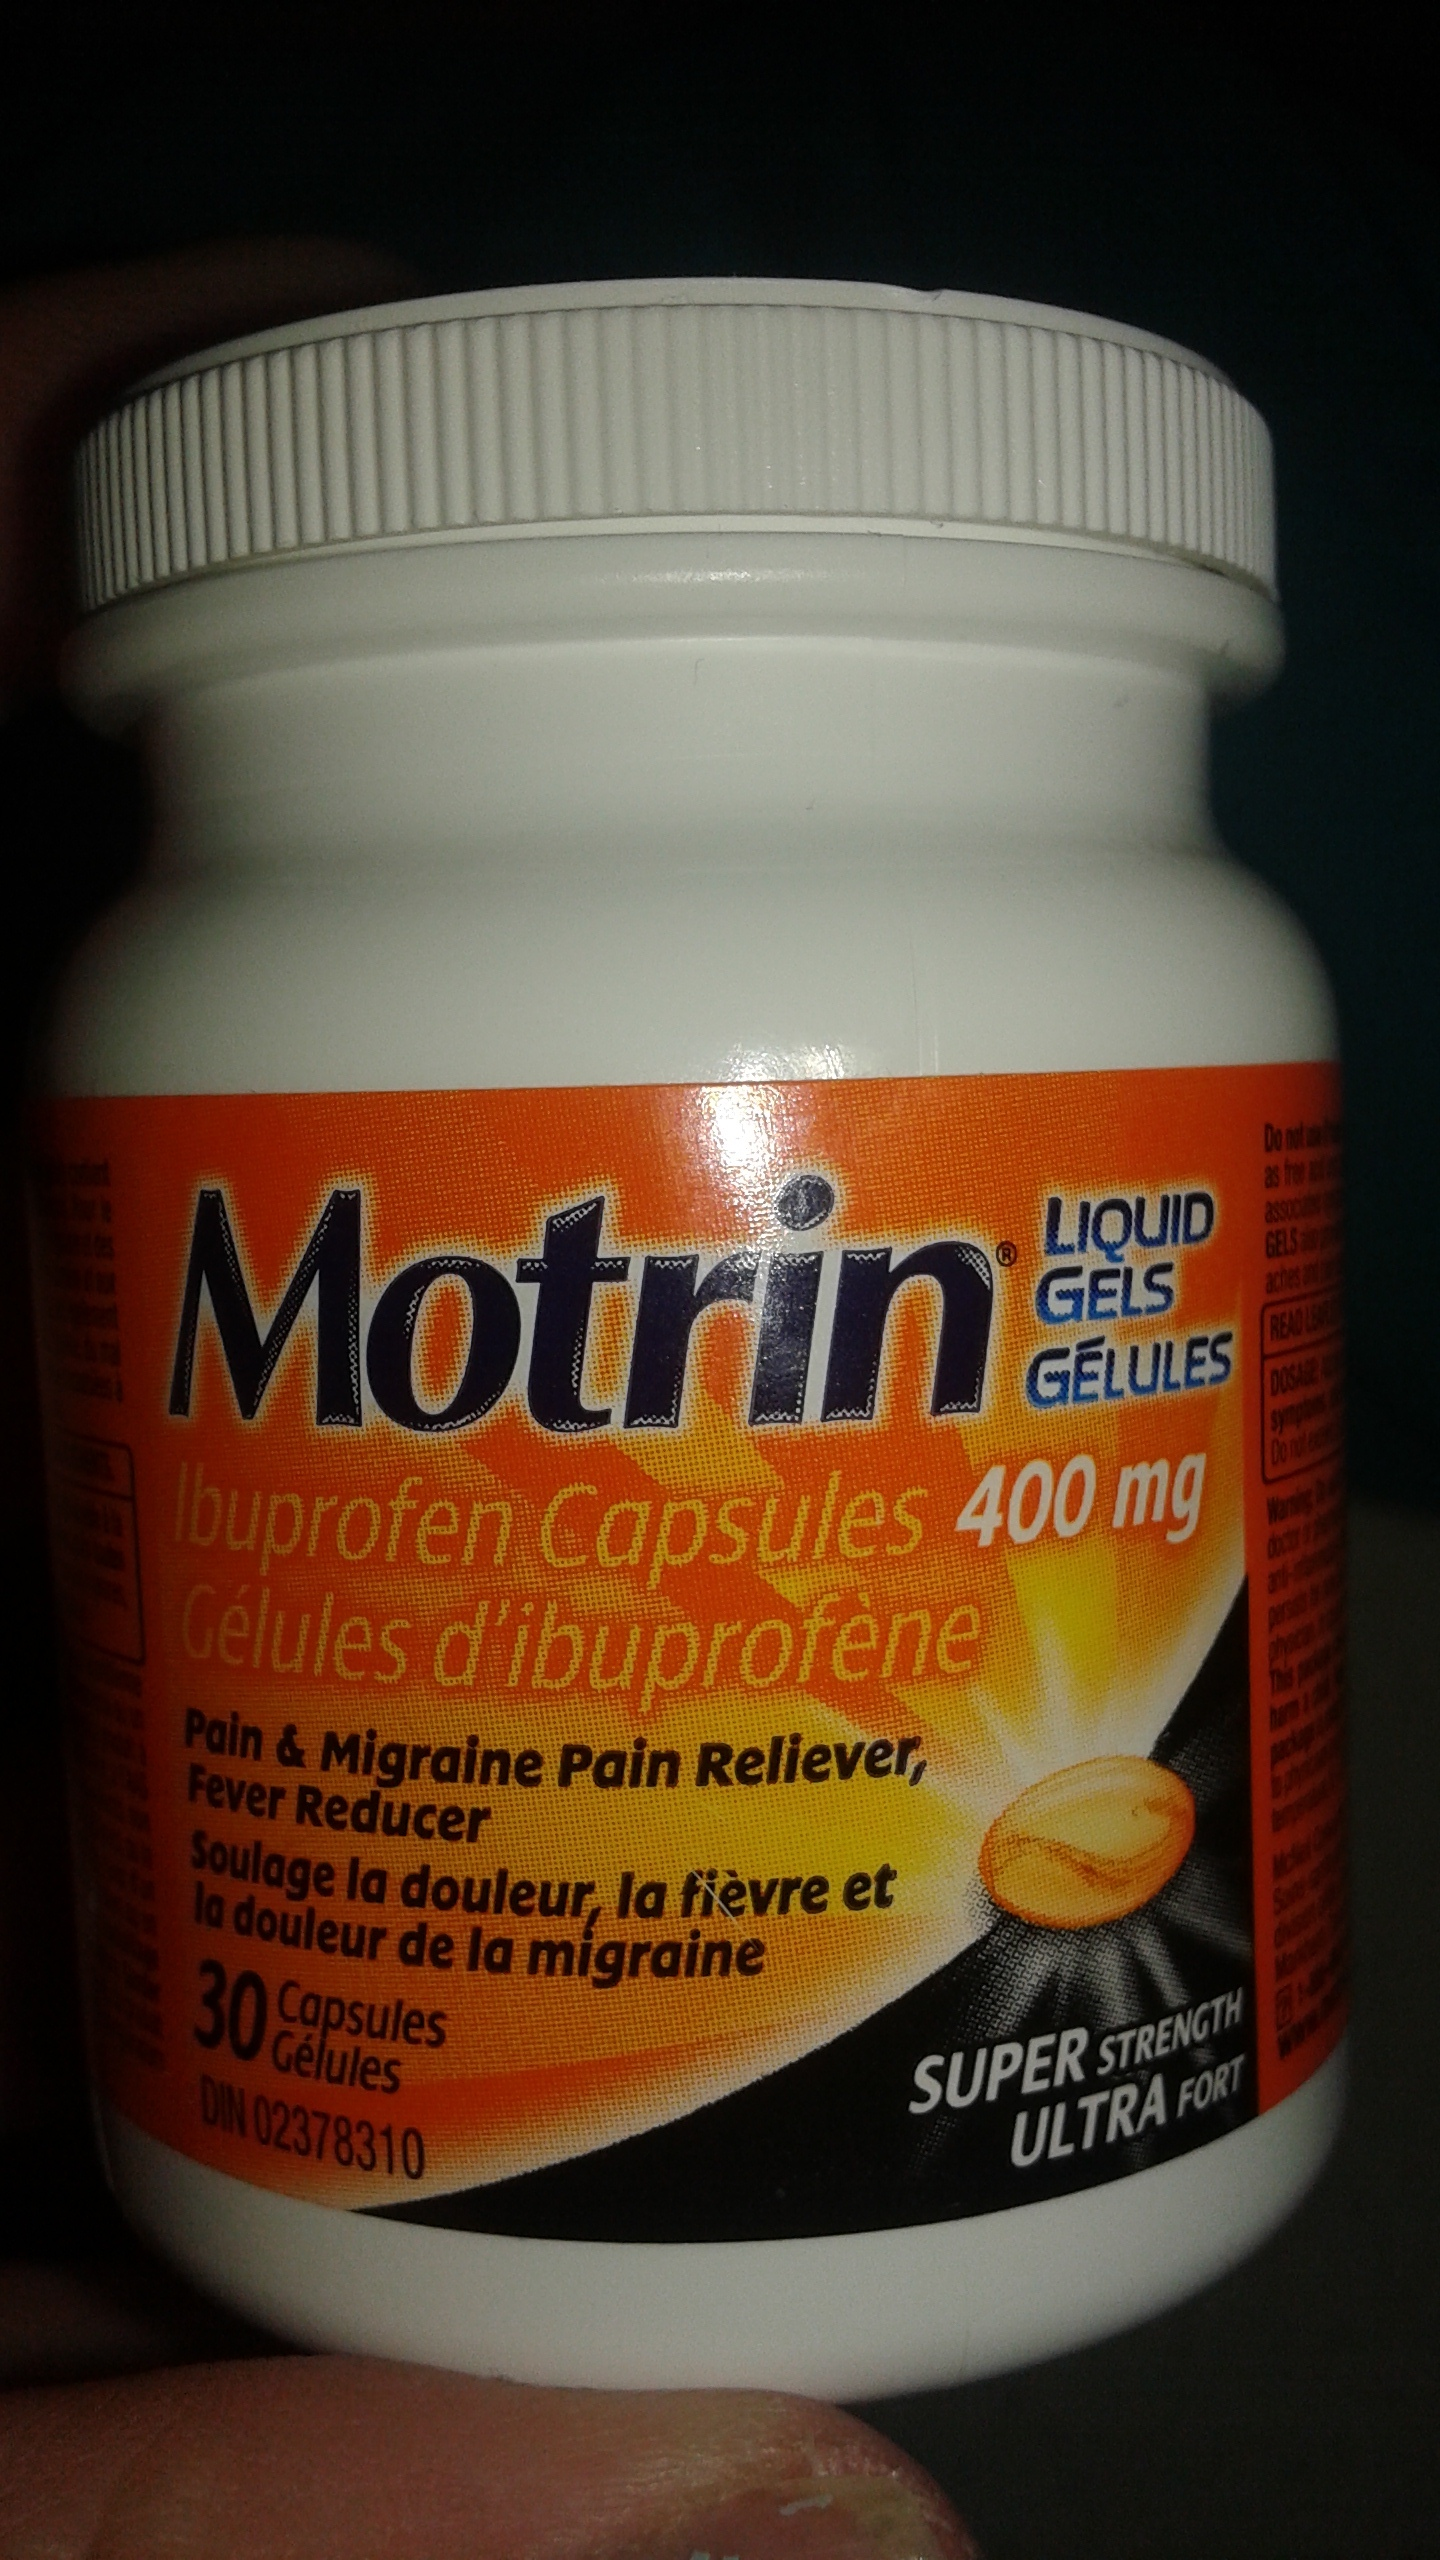 Motrin Liquid Gels Super Strength Reviews In Pain Relief